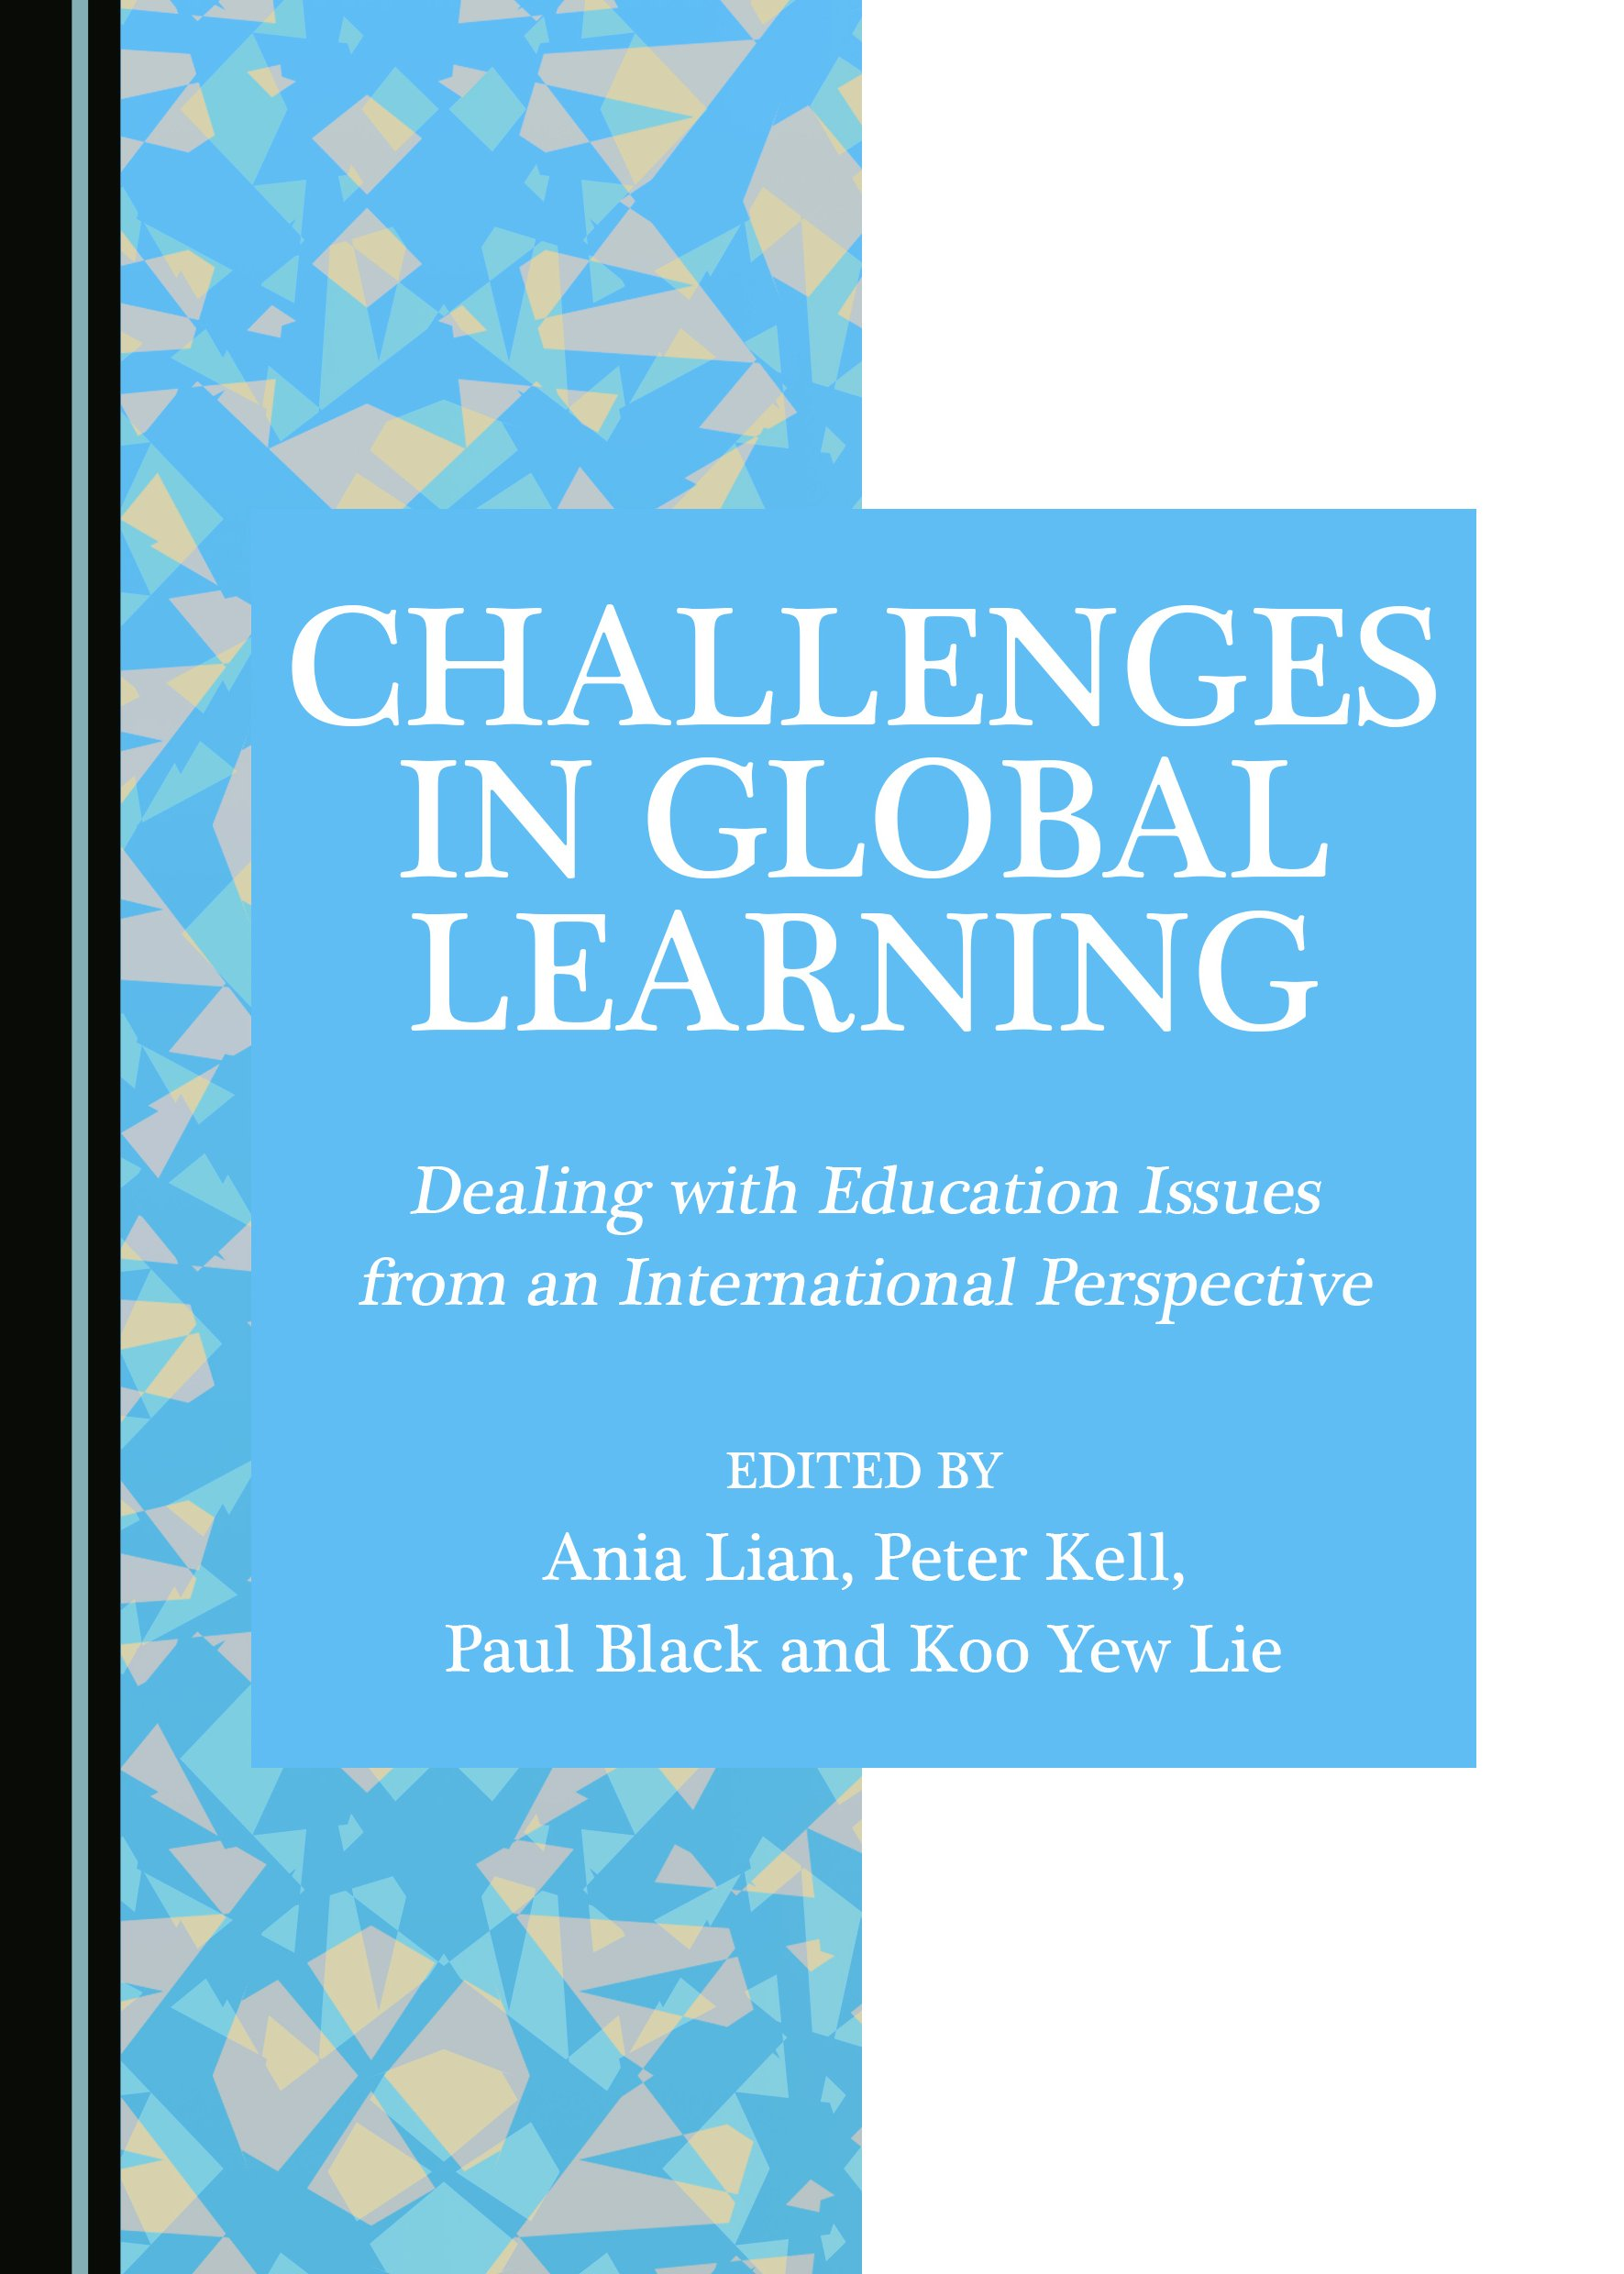 Challenges in Global Learning: Dealing with Education Issues from an International Perspective